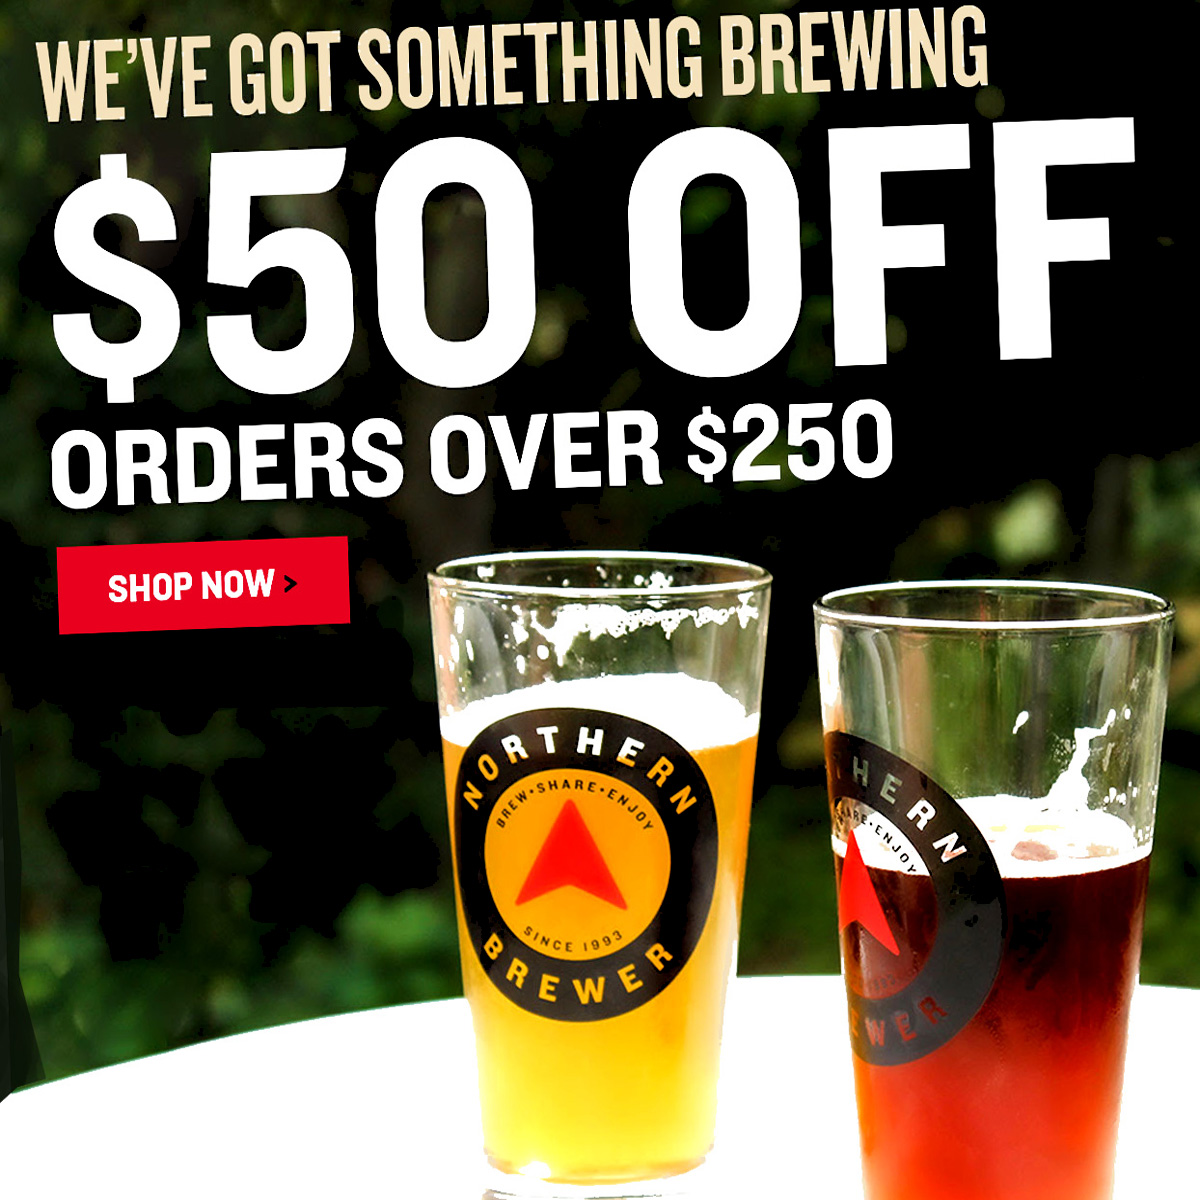 Northern Brewer Save $50 on a $250 Purchase at Northern Brewer with this NorthernBrewer.com Promo Code Coupon Code